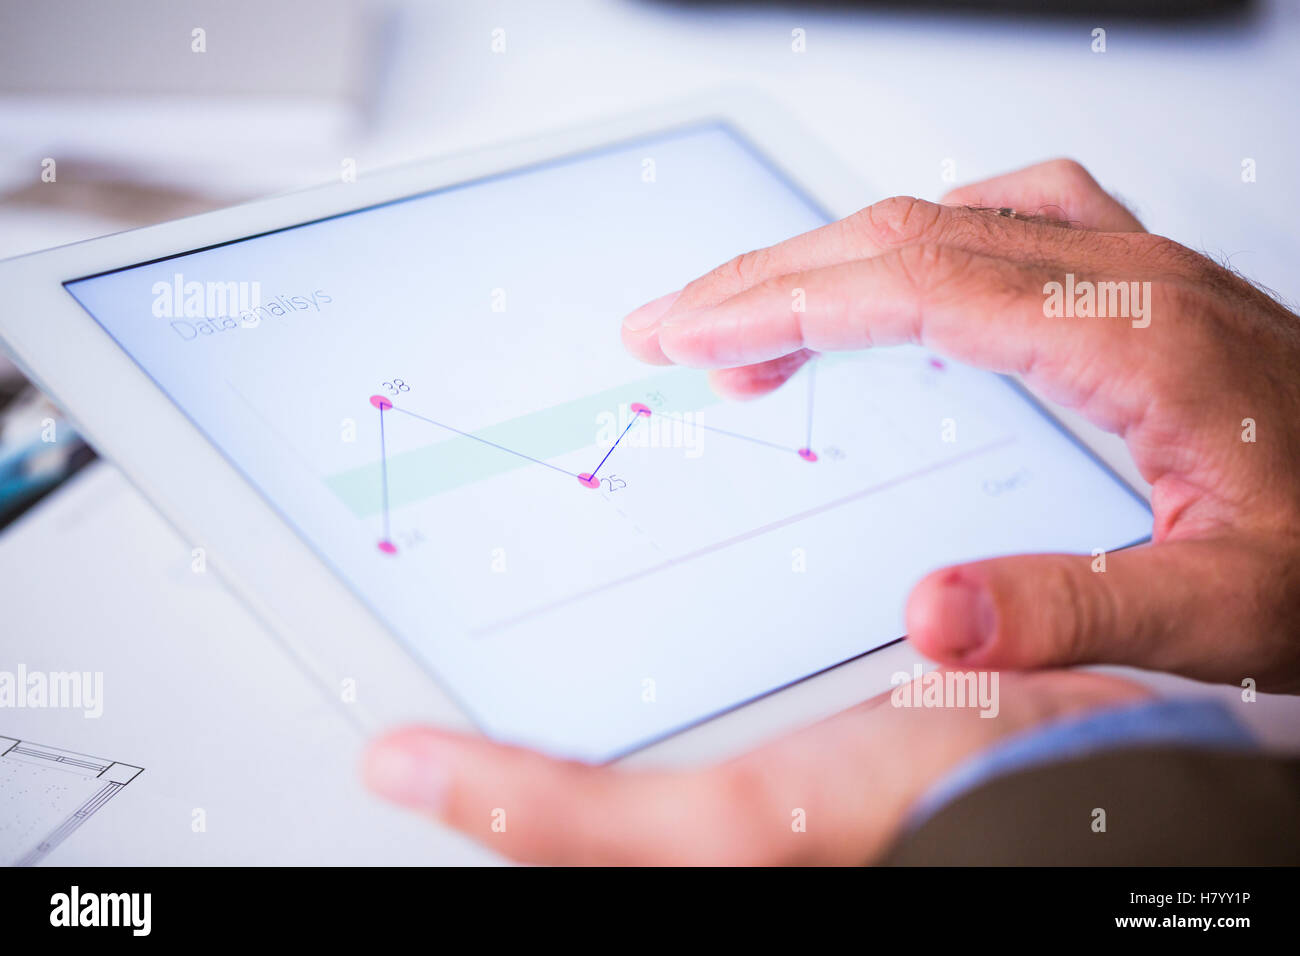 Man working with tablet - Stock Image